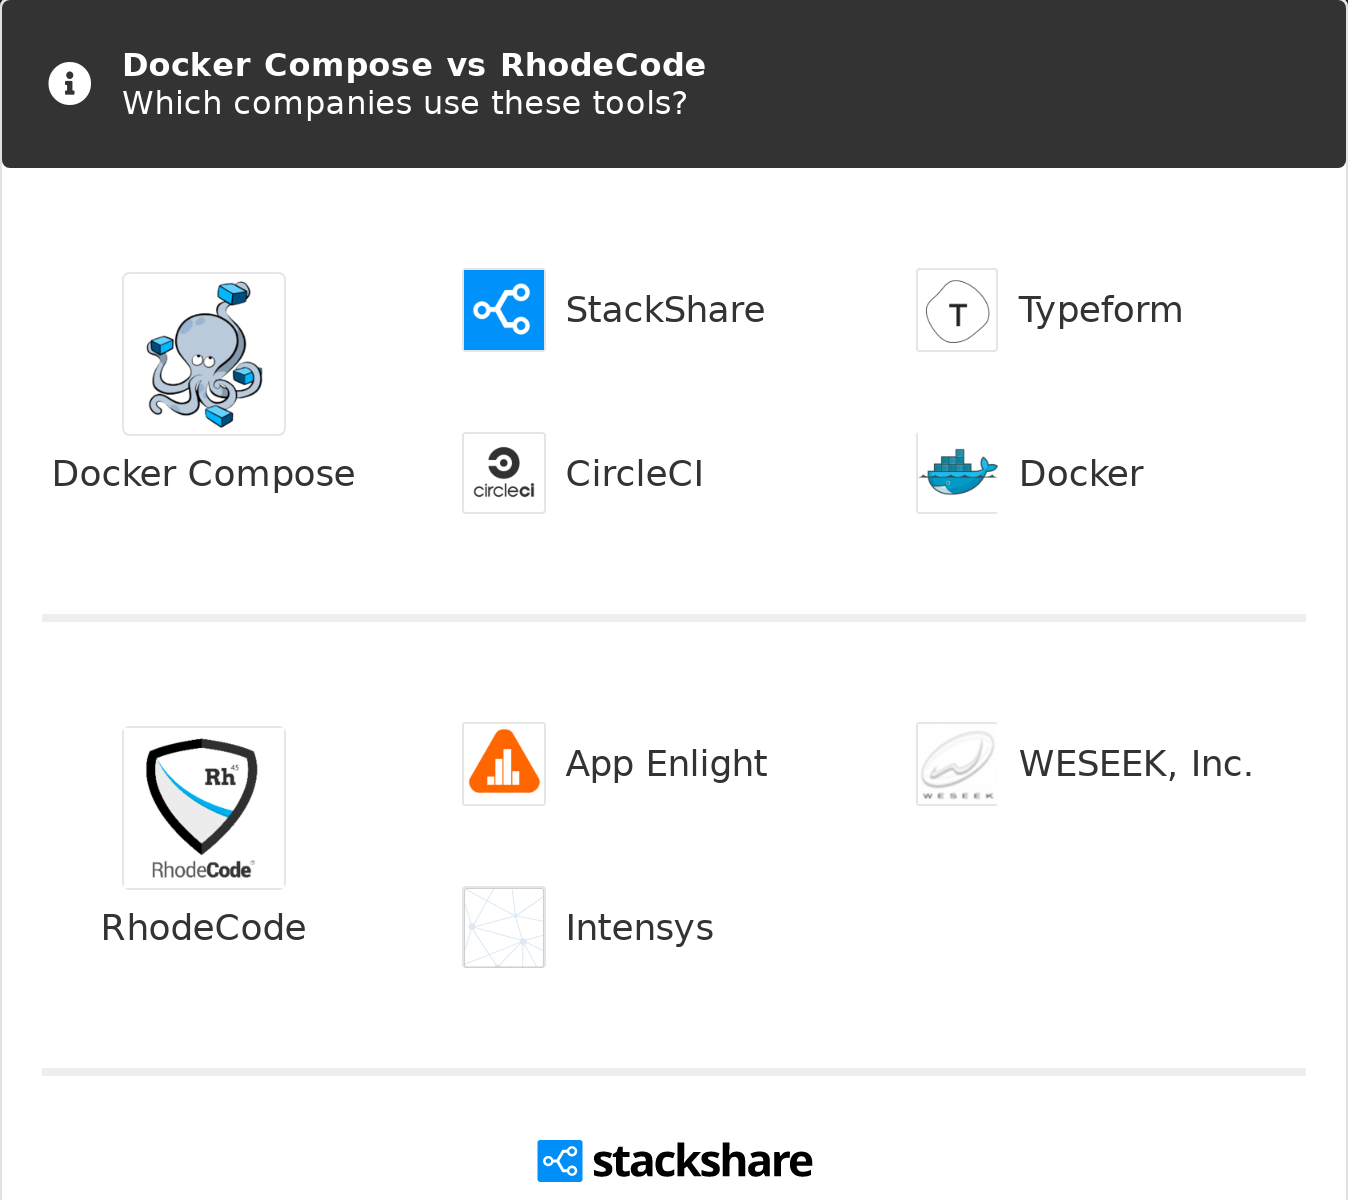 Docker Compose vs RhodeCode | What are the differences?